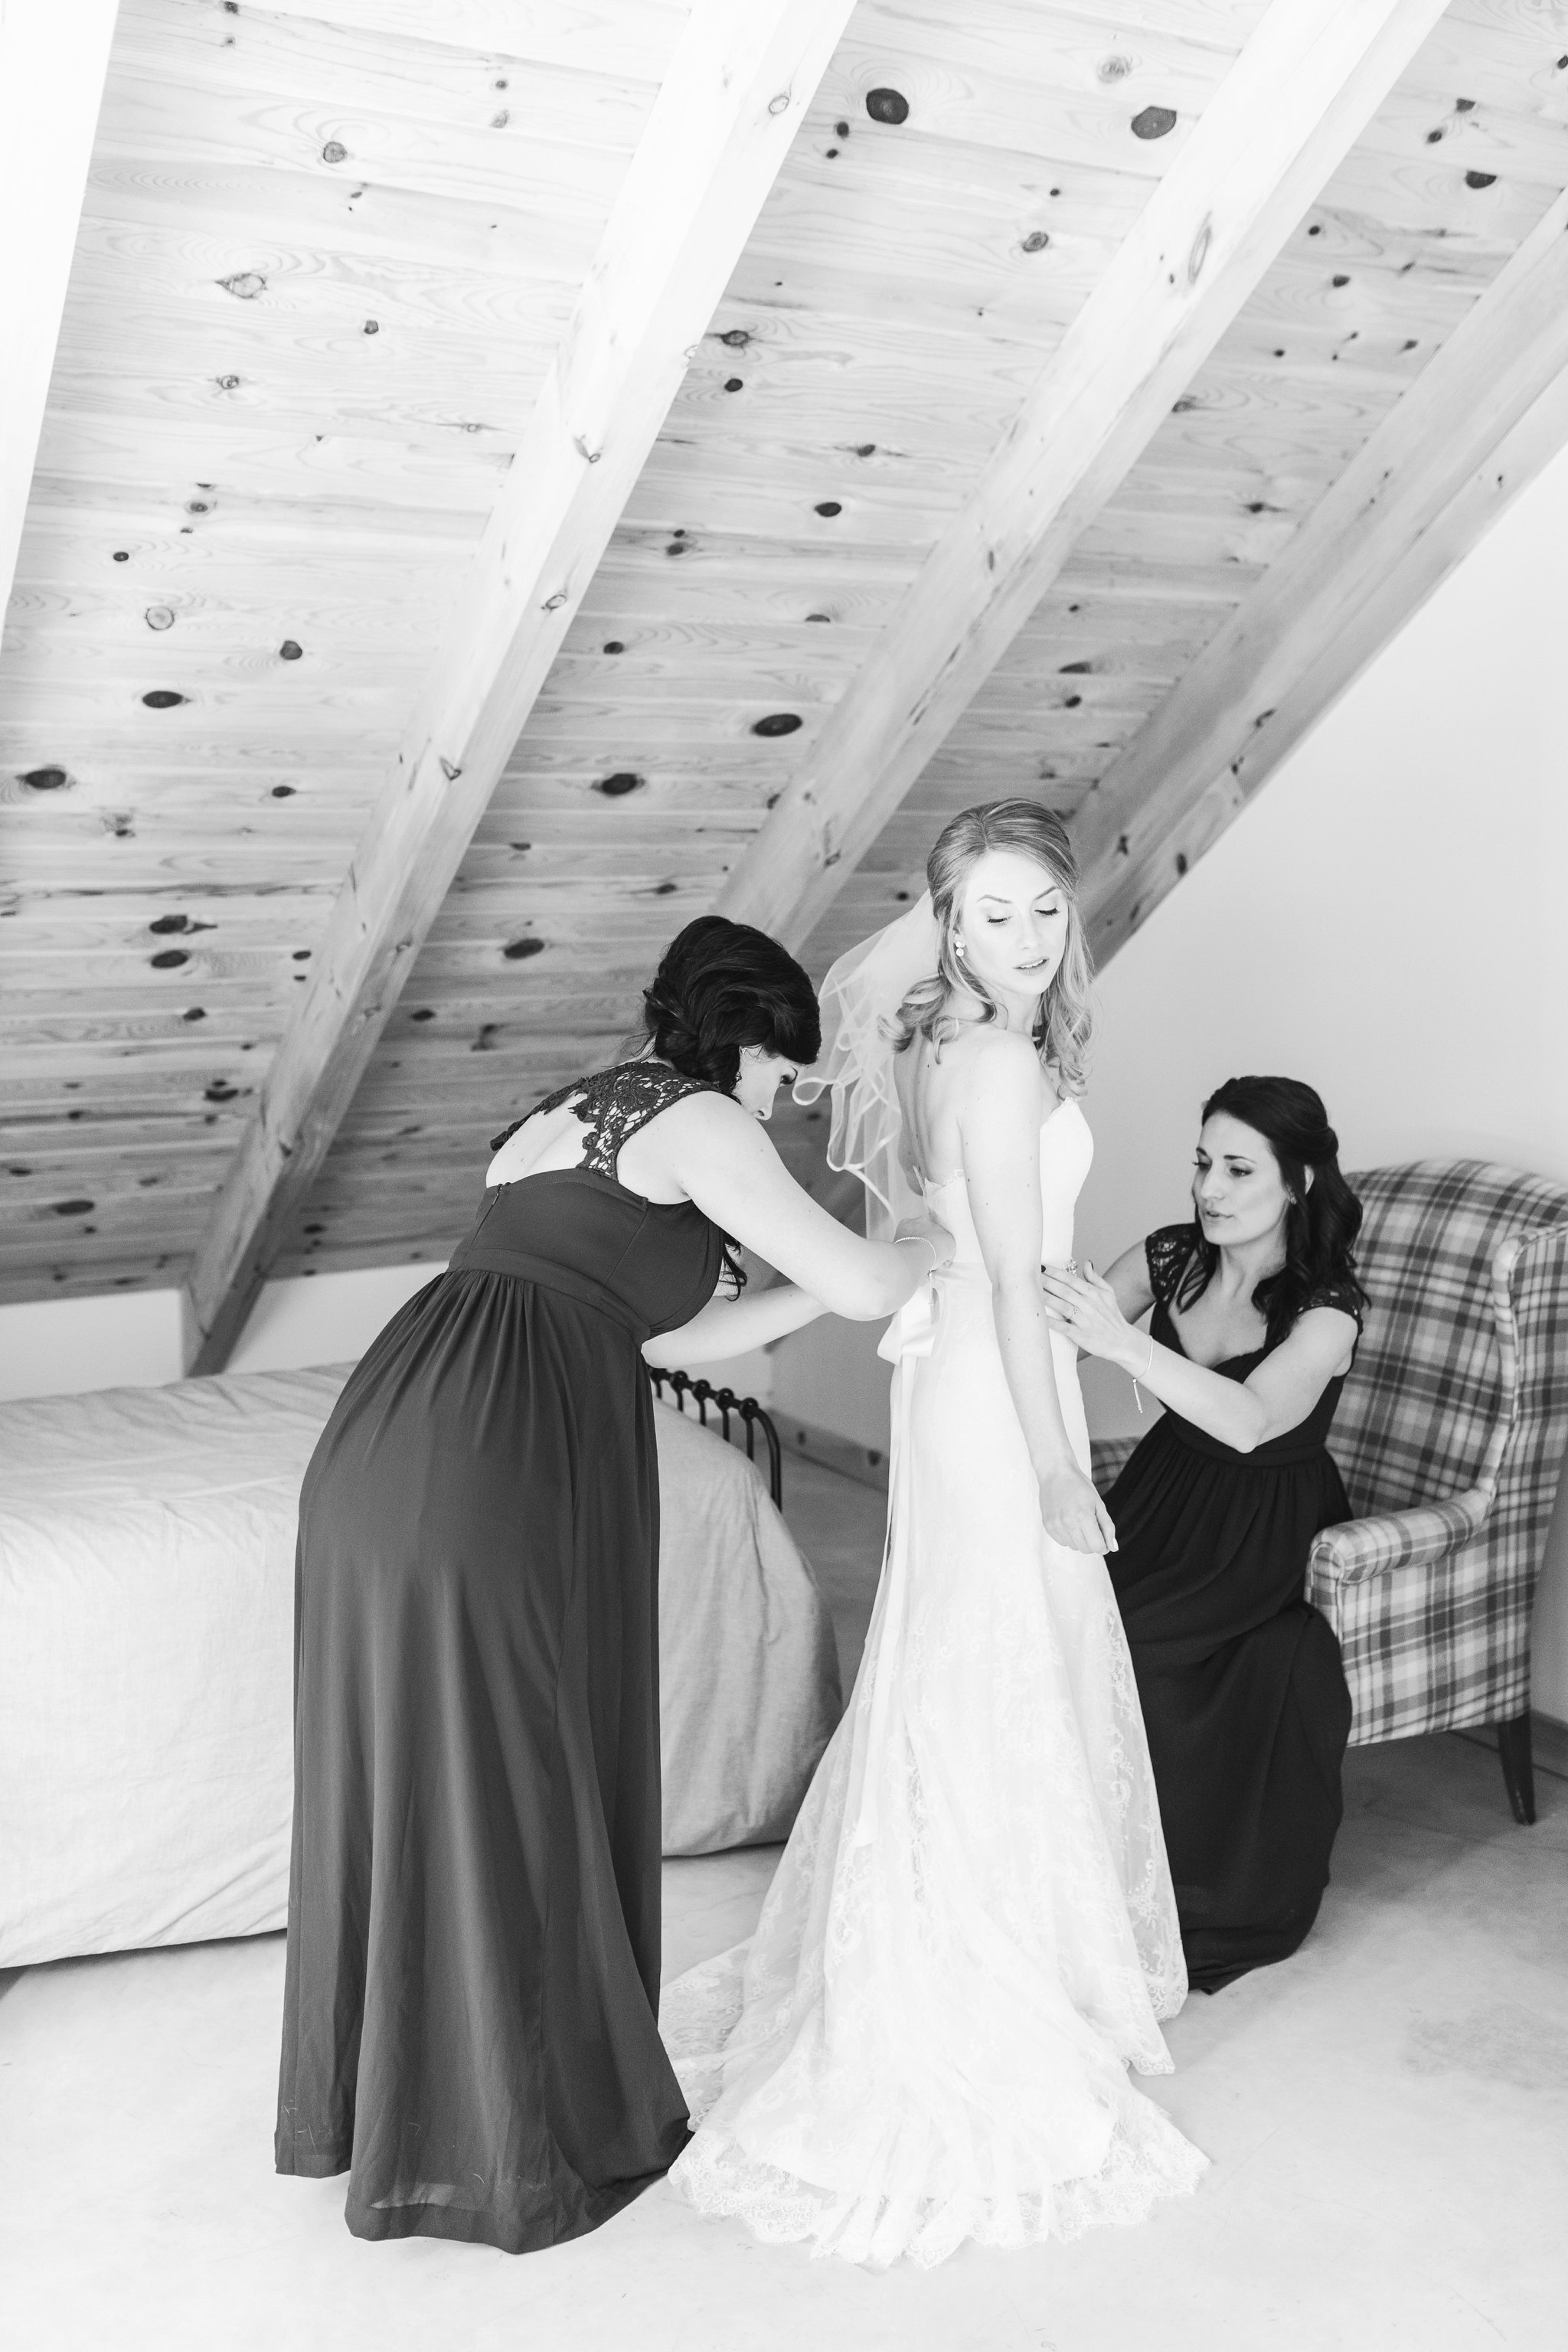 Bride gets dresses in the bridal suite at the Winter wedding at Le Belvedere